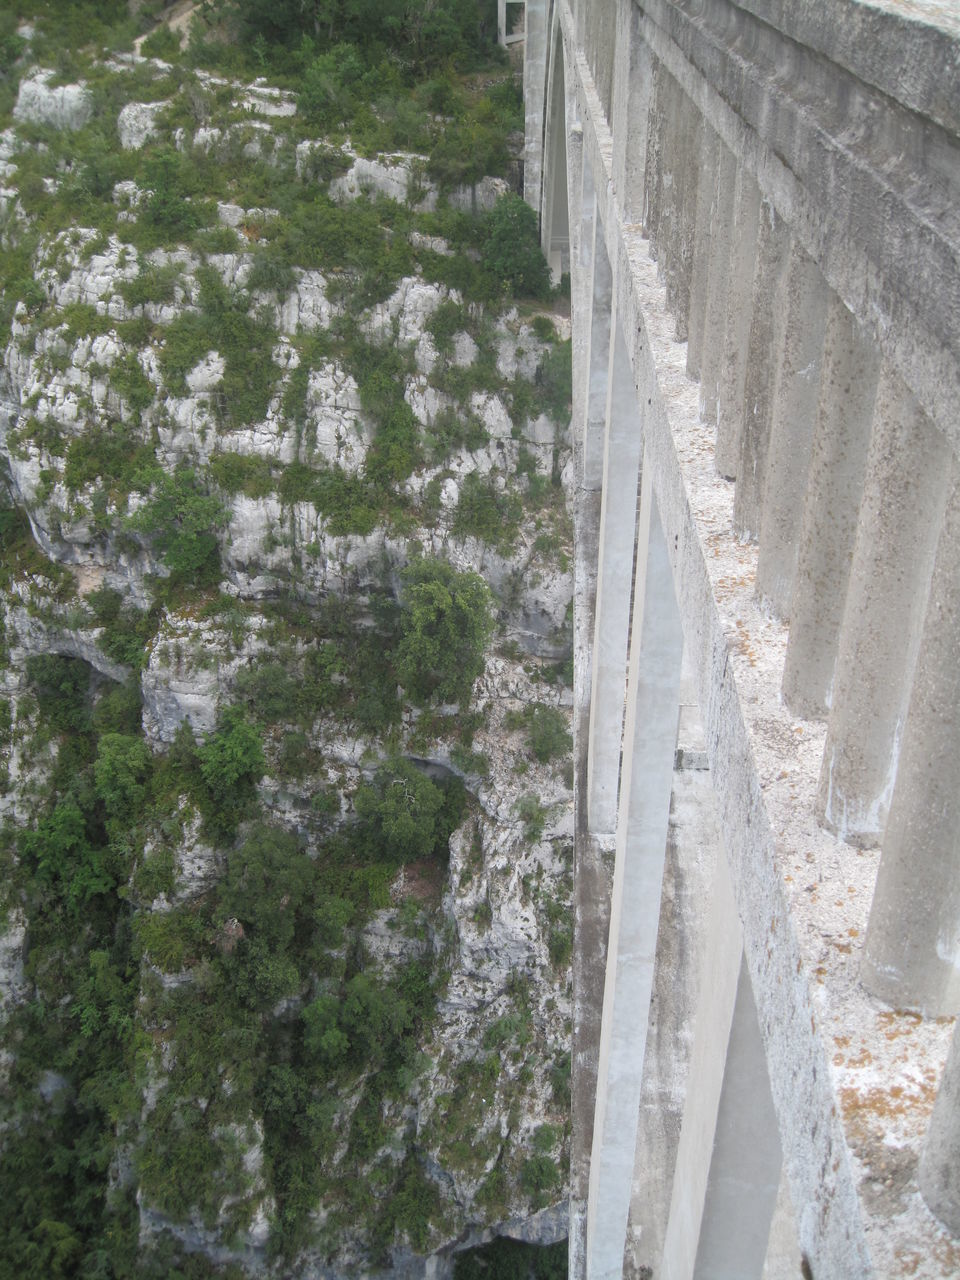 architecture, built structure, connection, dam, road, hydroelectric power, bridge - man made structure, transportation, day, tree, outdoors, water, no people, nature